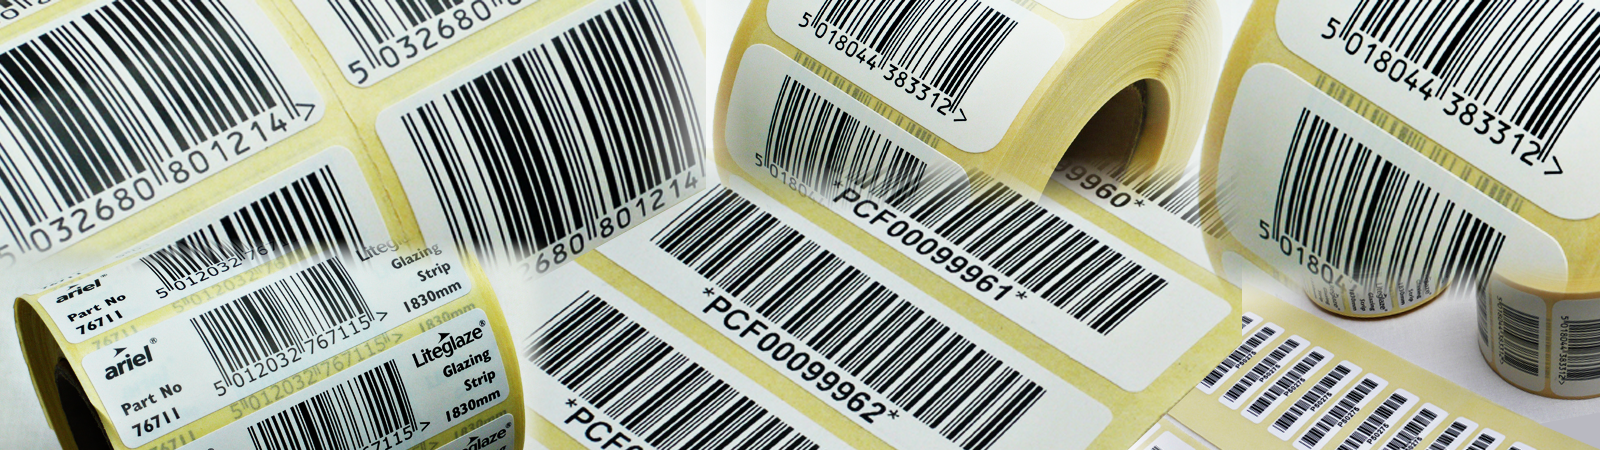 LABEL BANNER Barcode page